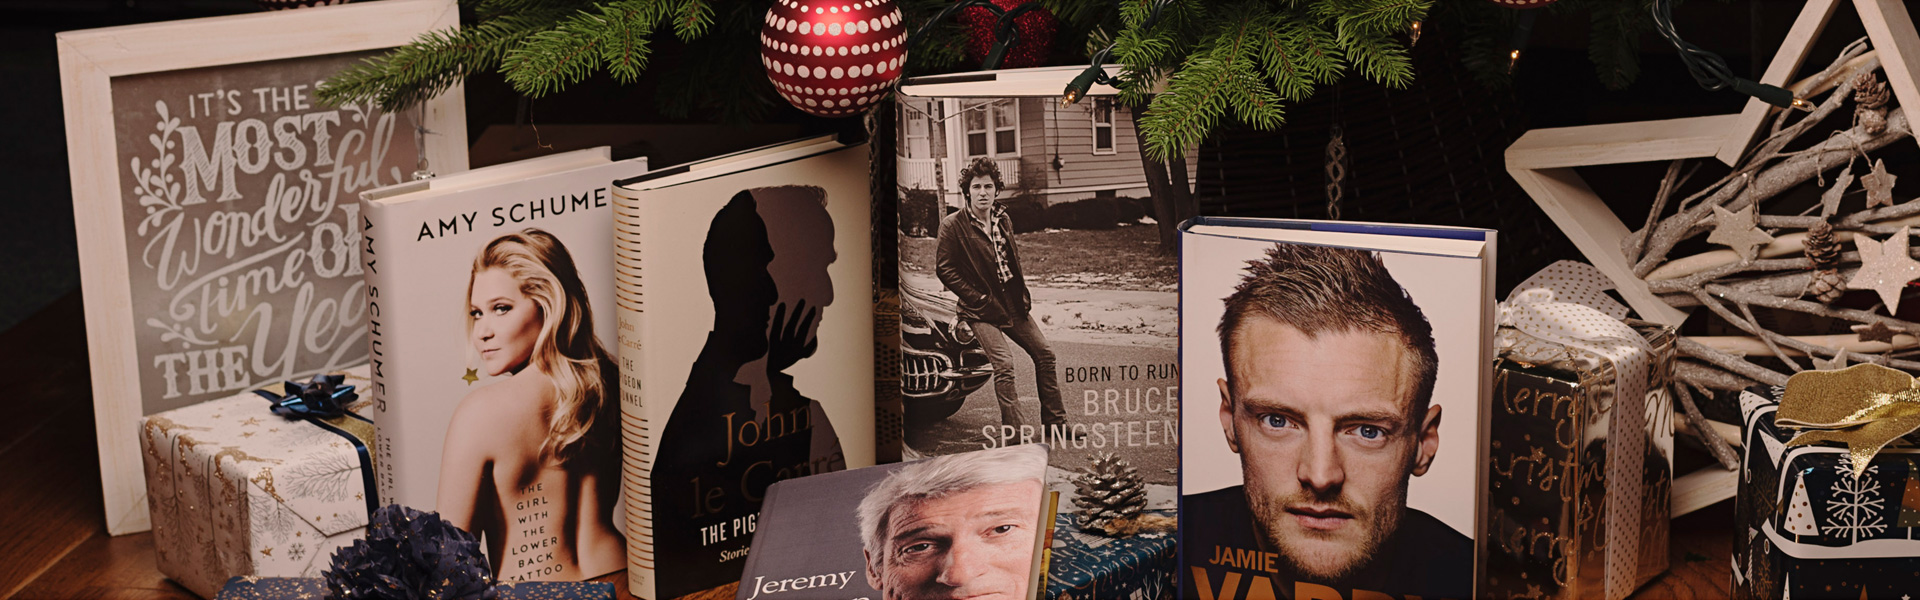 Our Christmas Top Picks: Autobiographies and Biographies 2016